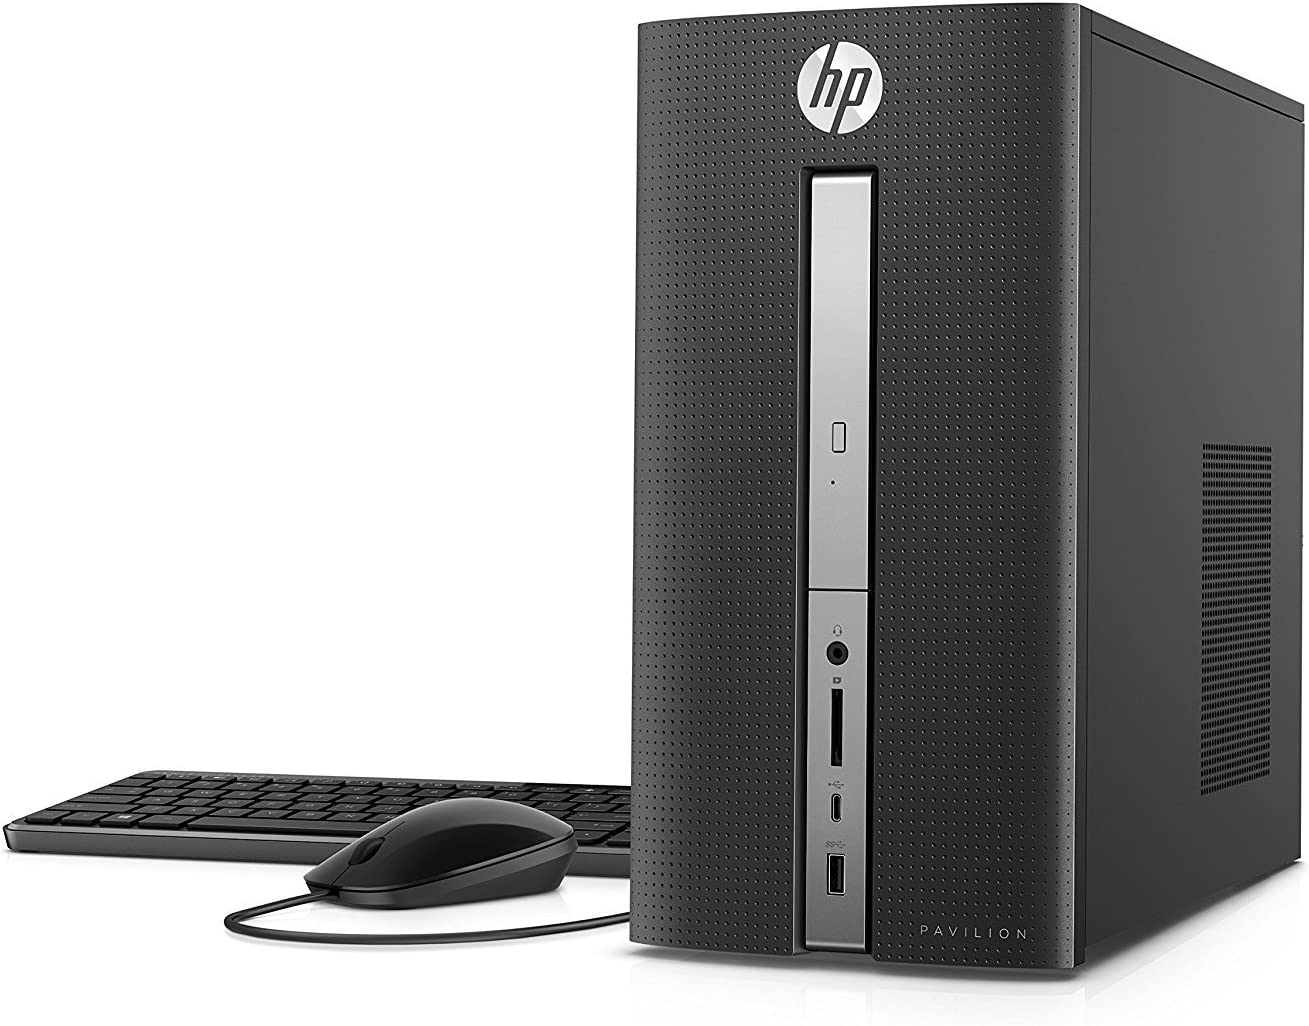 Newest HP Pavilion 570 High Performance Business Desktop - Intel Quad-Core i5-7400 Up to 3.5GHz, 16GB DDR4, 1TB HDD, SuperDVD Burner, WLAN, Bluetooth, HDMI, USB 3.0, Keyboard & Mouse, Windows 10